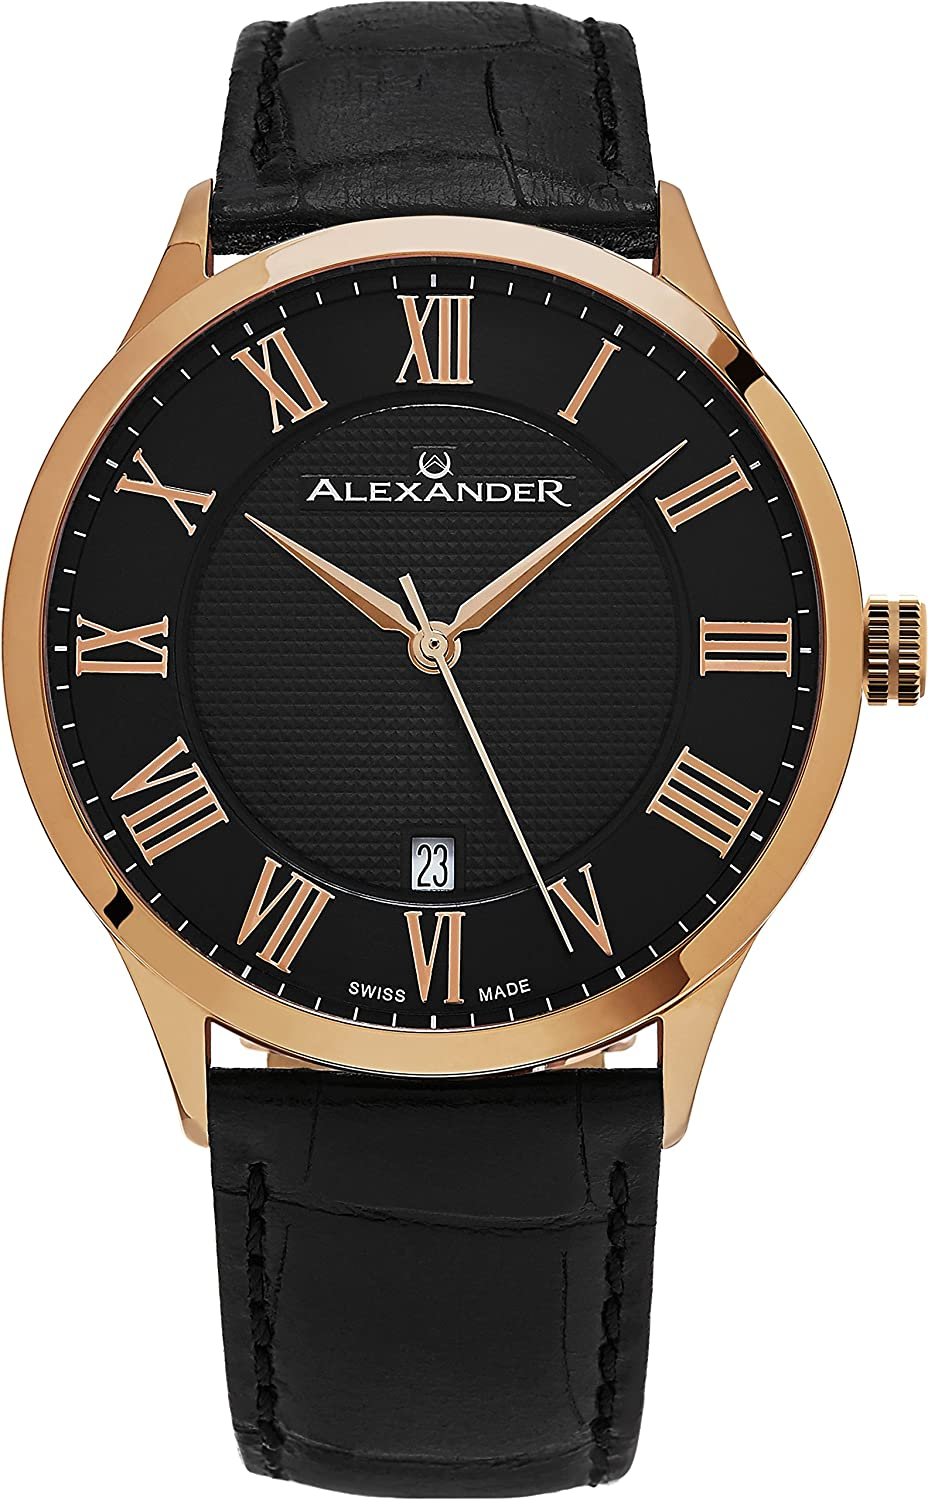 Alexander Statesman Triumph Wrist Watch for Men – Stainless Steel Plated Rose Gold Watch – Black Leather Analog Swiss Watch – Black Dial Date Mens Designer Watch A103-05